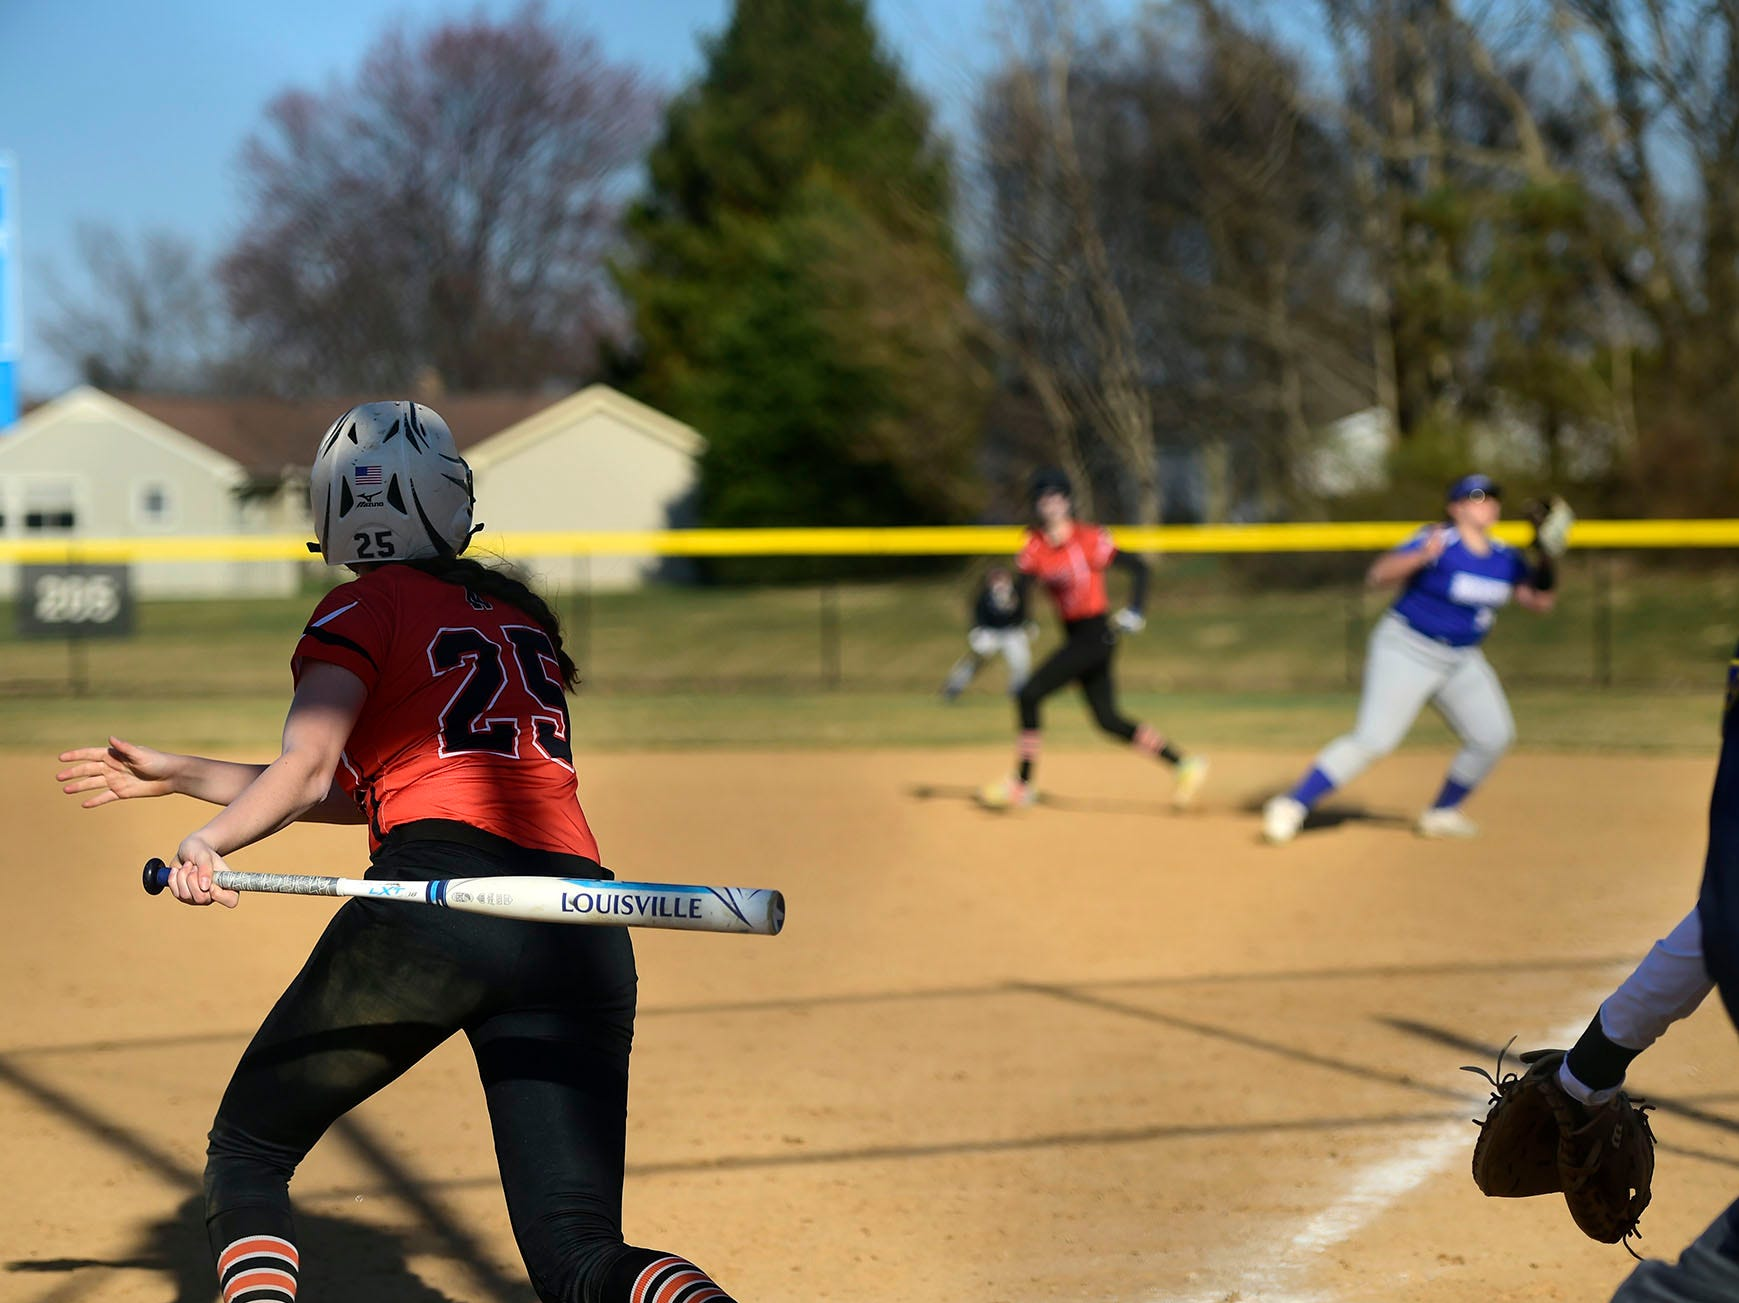 Northeastern leadoff hitter Haley Updegraff drives the ball down the first base line against Spring Grove Wednesday, April 3, 2019. Updegraff went 3-for-5 with four runs scored in a game Spring Grove won, 19-4.